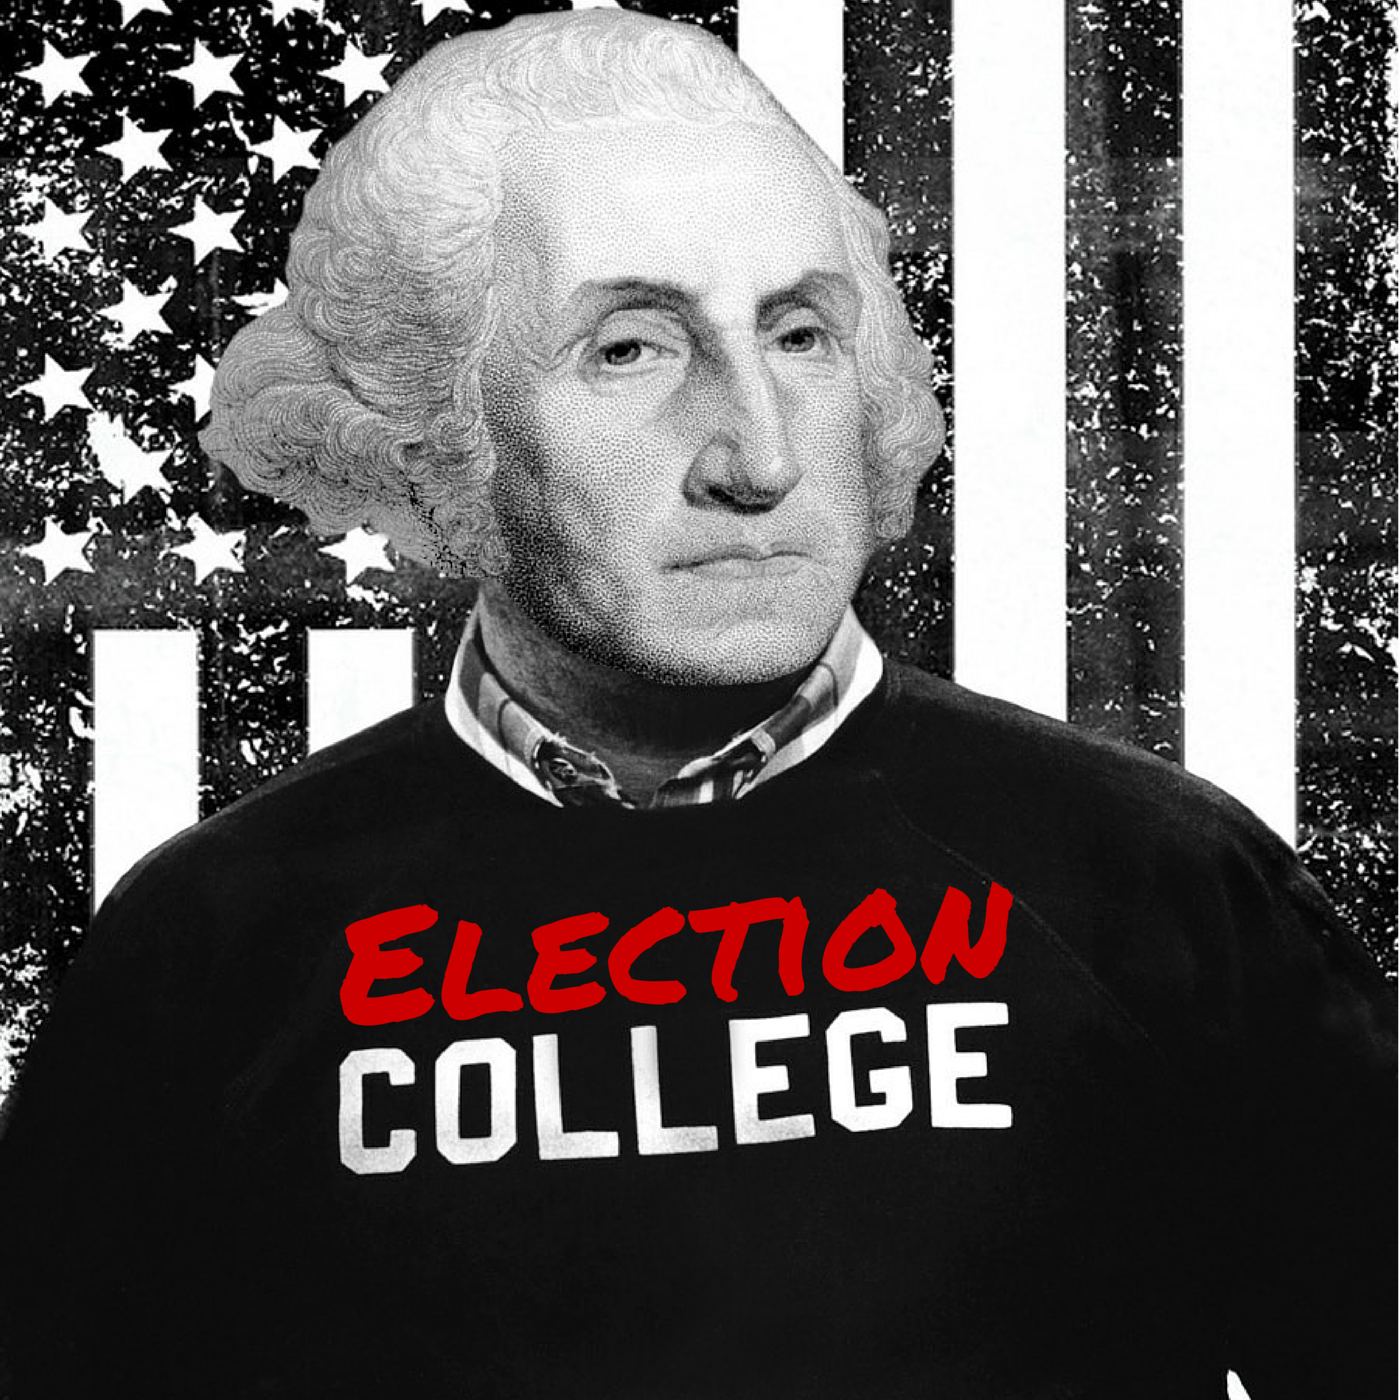 FDR Dies and Truman Assumes the Presidency | Episode #054 | Election College: United States Presidential Election History